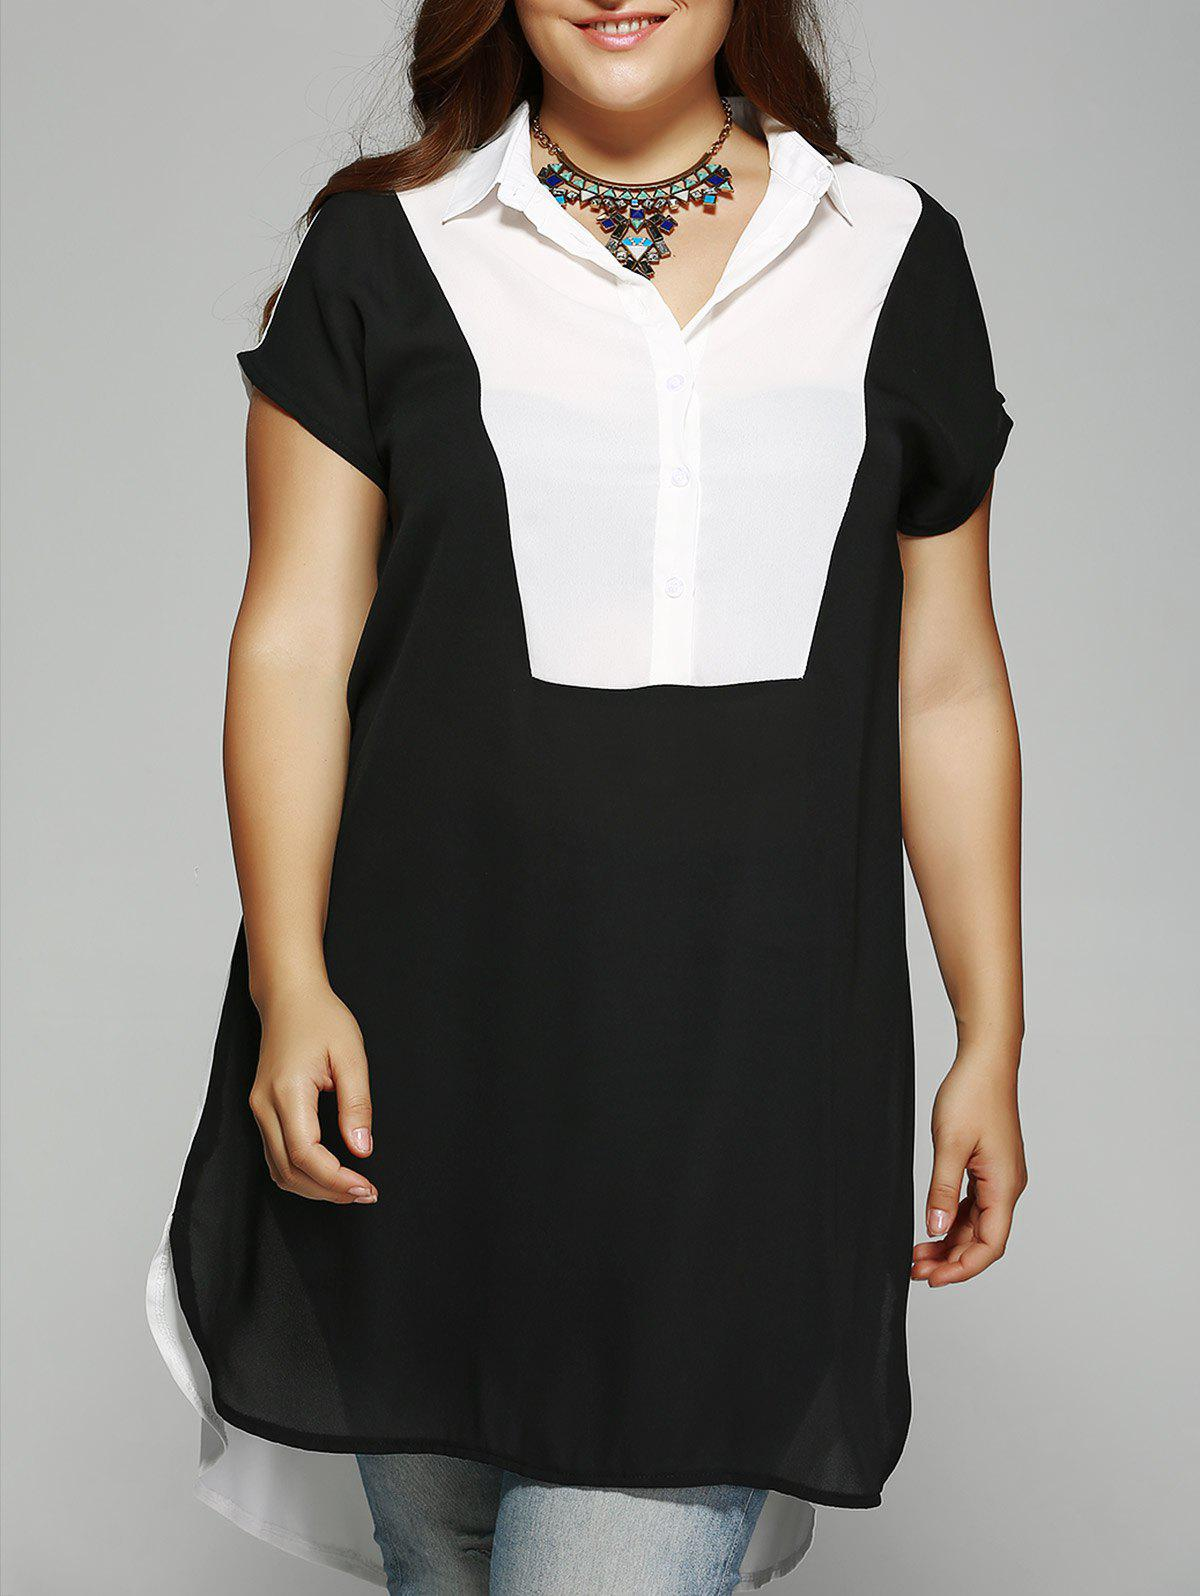 Plus Size High Low Hem Long Blouse - WHITE/BLACK 3XL